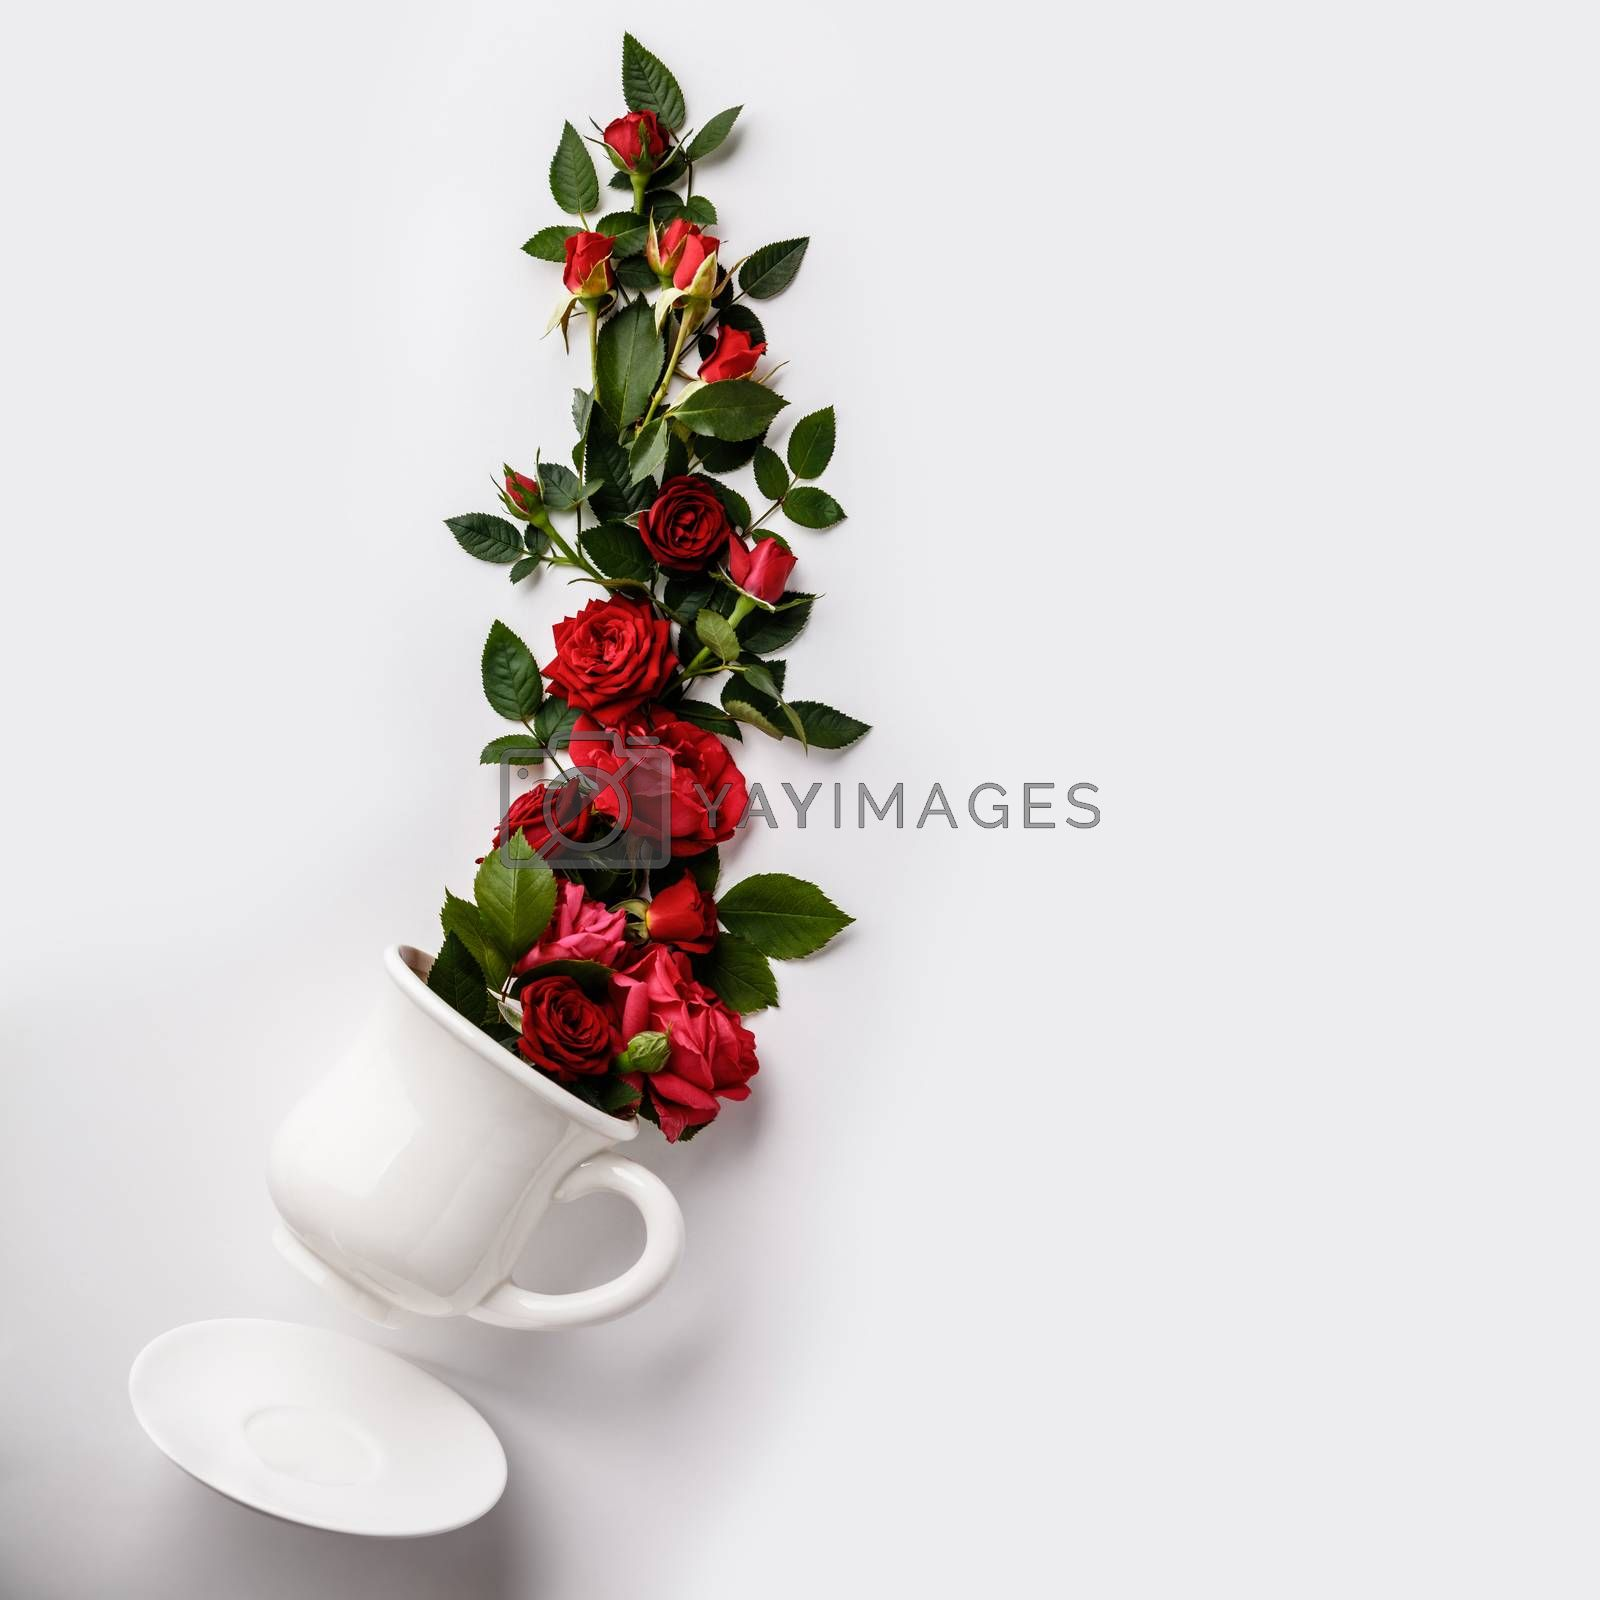 Flowers composition. Creative layout made of coffee or tea cup with red roses on white background